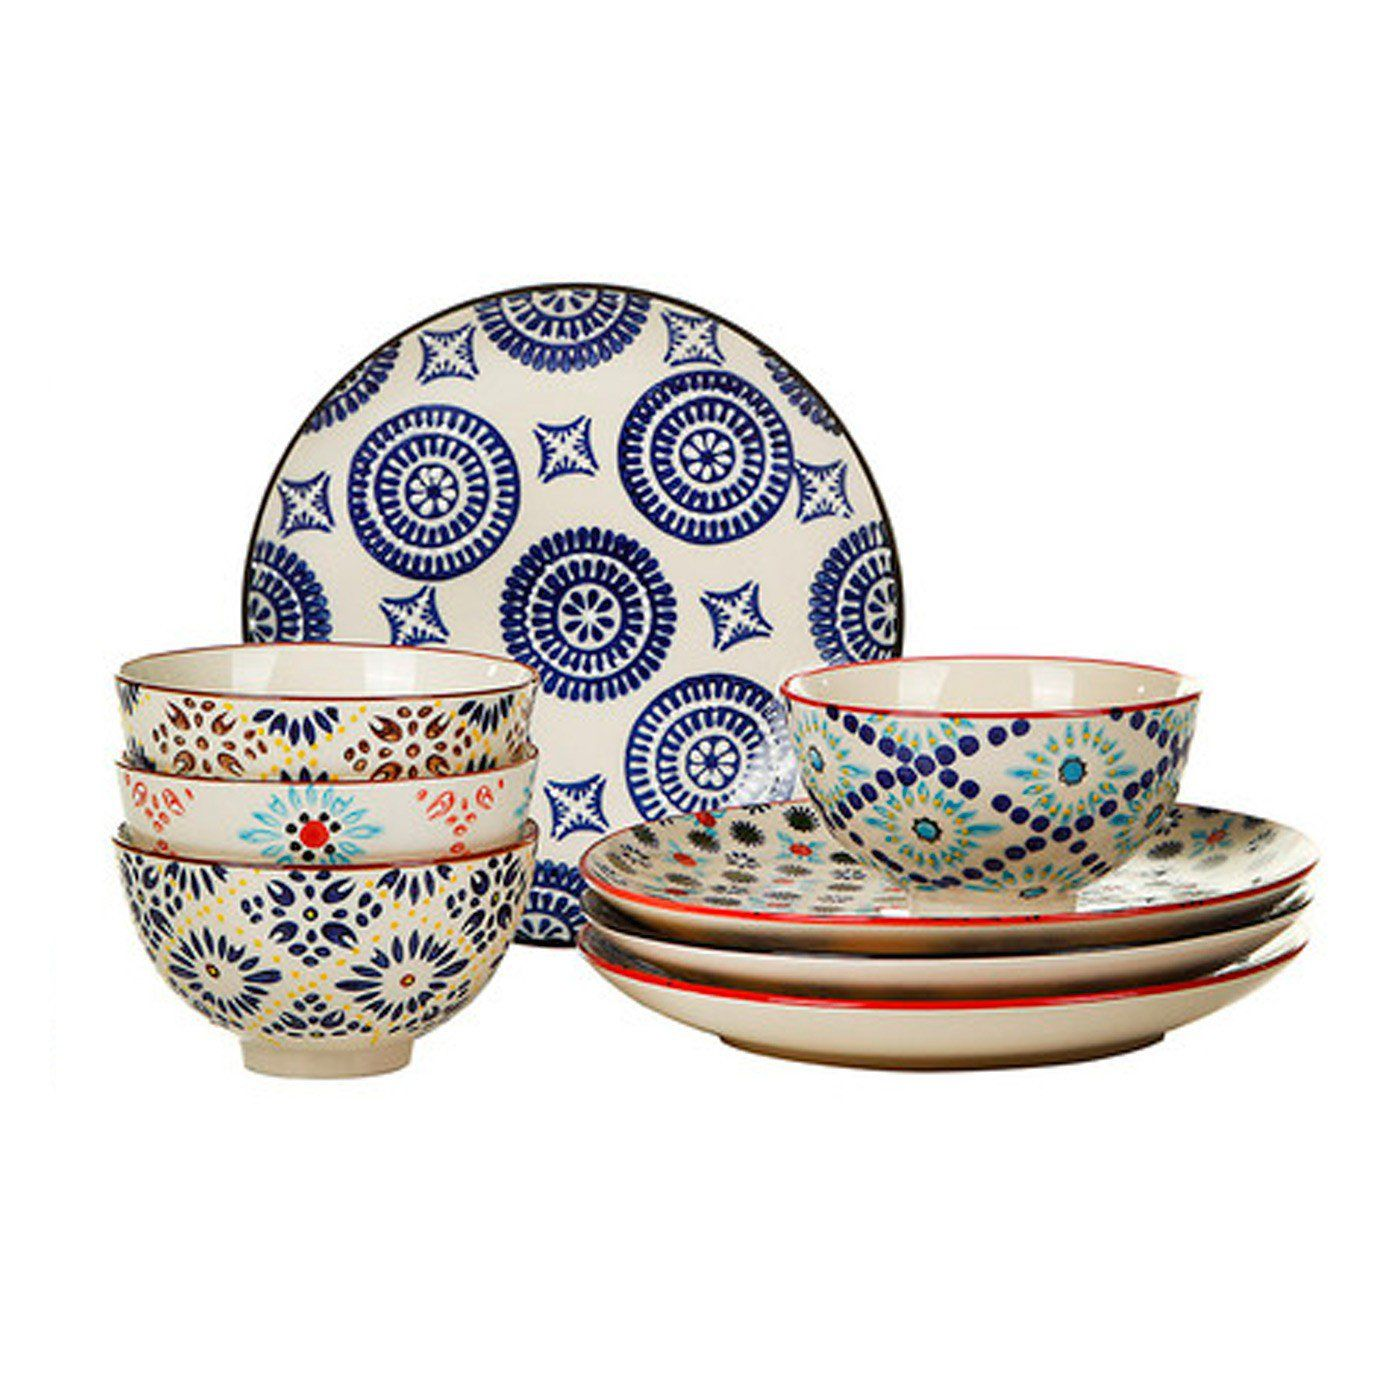 Buy Pols Potten Mosaic Plates   Set Of 4